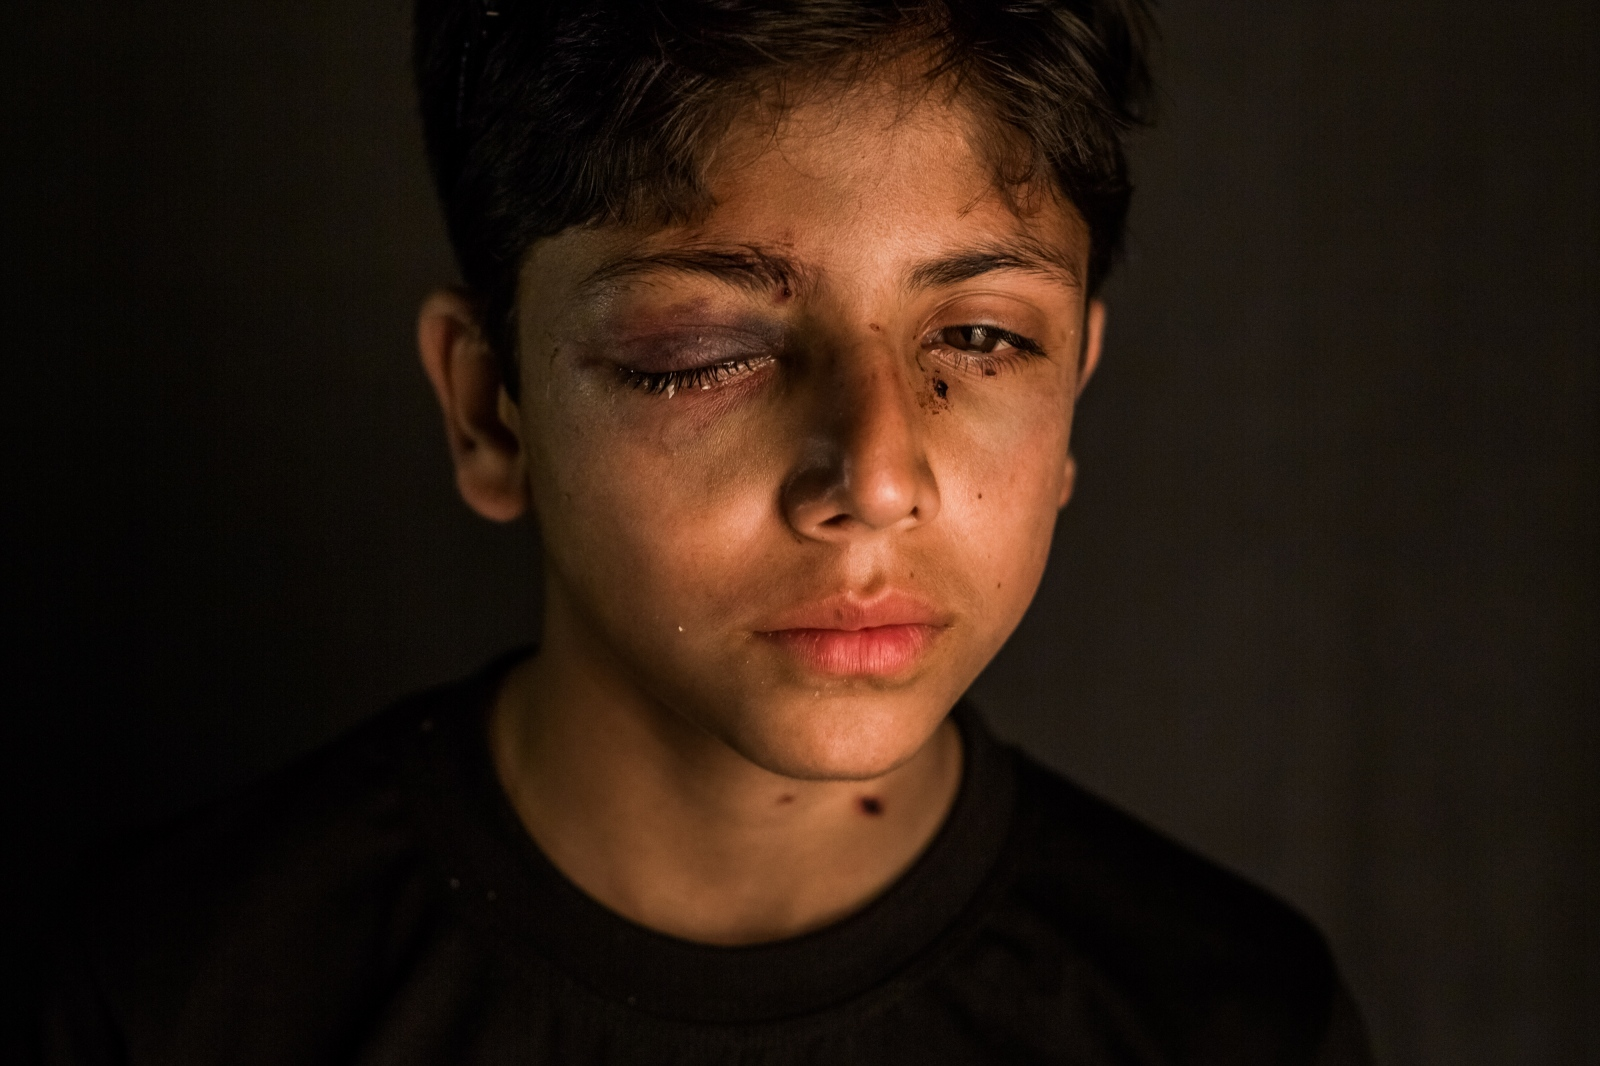 "Kashmiri child Mushtaq Ahmed, 11, poses for a portrait inside the Shri Maharaja Hari Singh (SMHS) hospital in Srinagar on October 4, 2016. Mushtaq, who was accompanied by his father, was injured on September 30 when Indian Central Reserve Police Force (CRPF) personnel fired pellets into a park where he was playing cricket with friends, in the Khanyar area of downtown Srinagar where he lives. He had undergone surgery and was due to be further operated on to remove pellets from his right eye. His father explained that no protests was taking place in the area at the time his son was shot, and says the CFPR personnel patrolling the area to ensure calm offered ""no protection"" to the people living there."